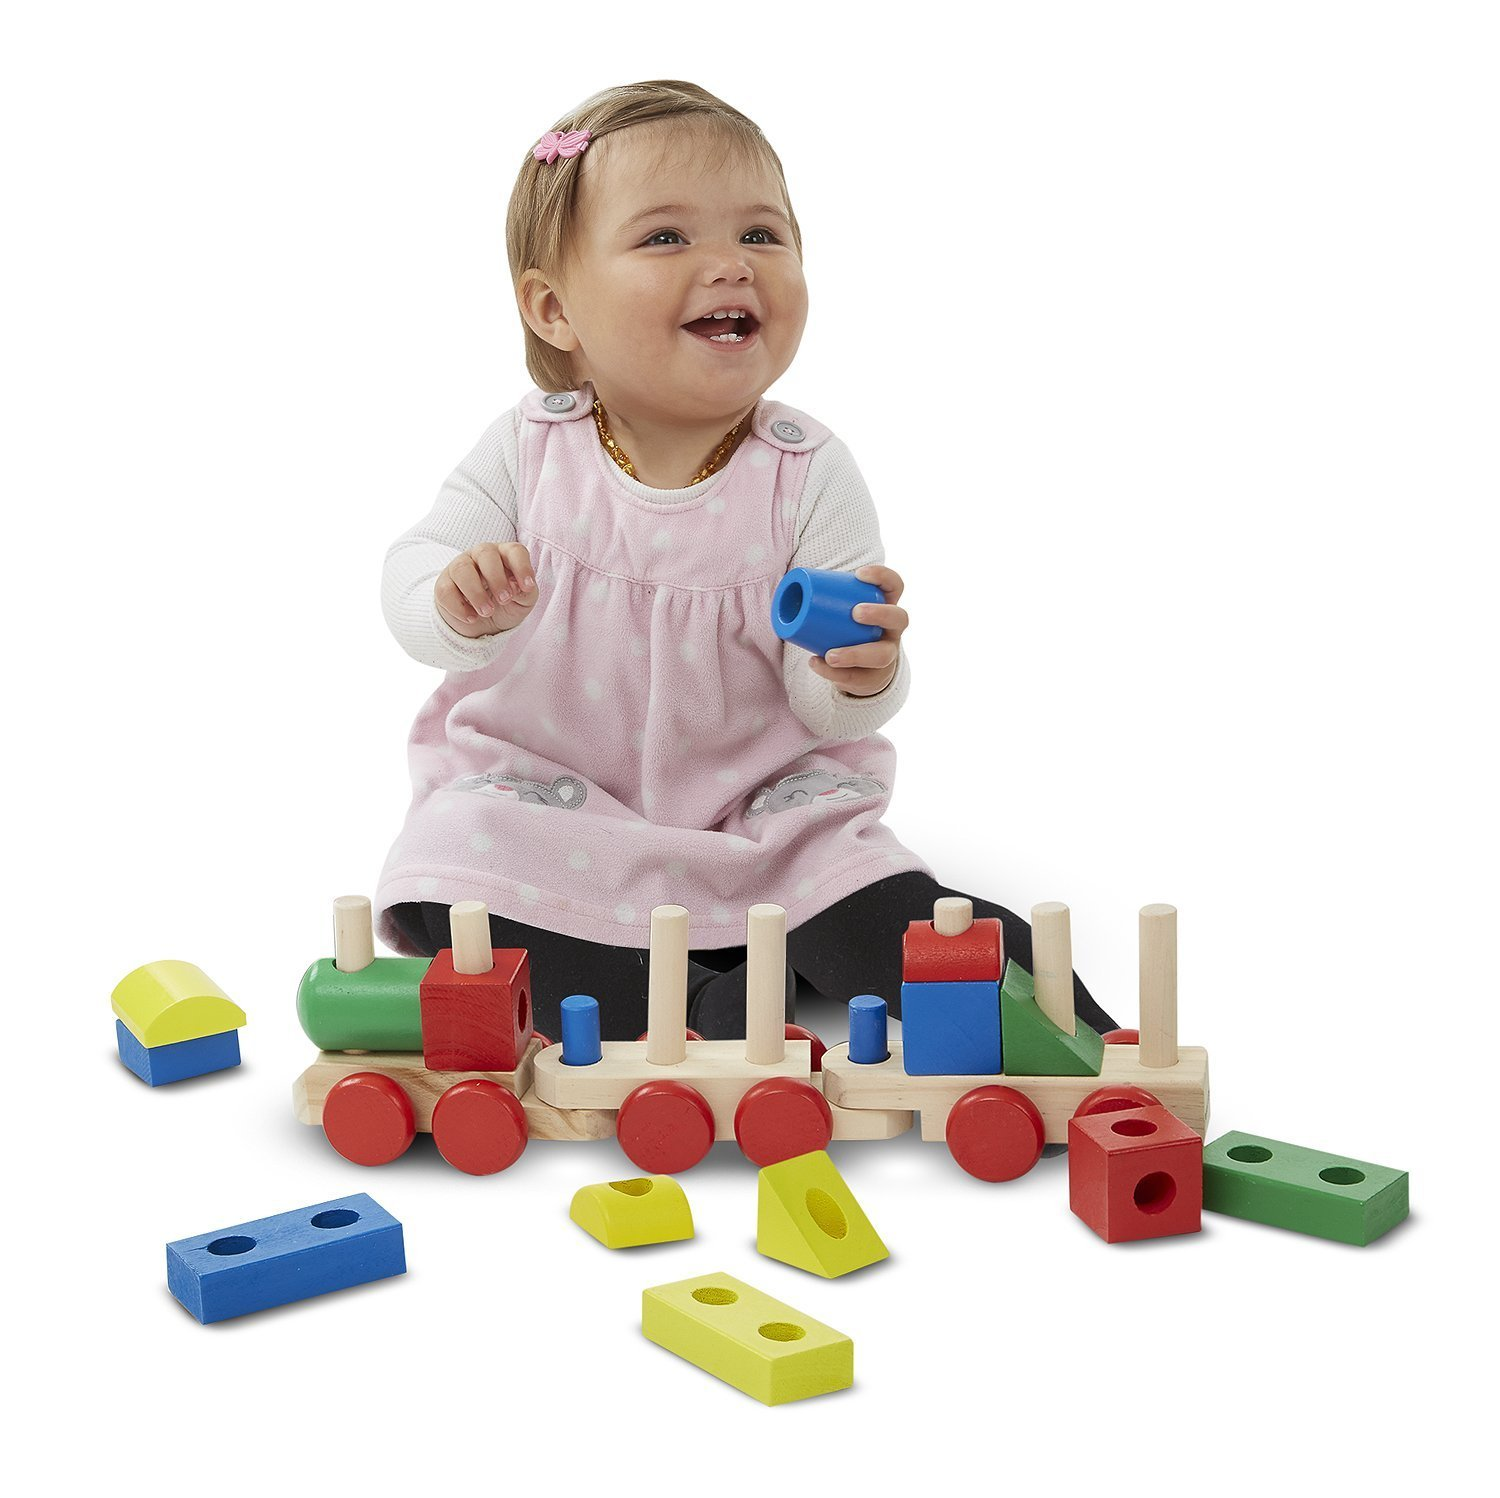 Construction Toys For 2 Year Olds : Best toys for two year olds